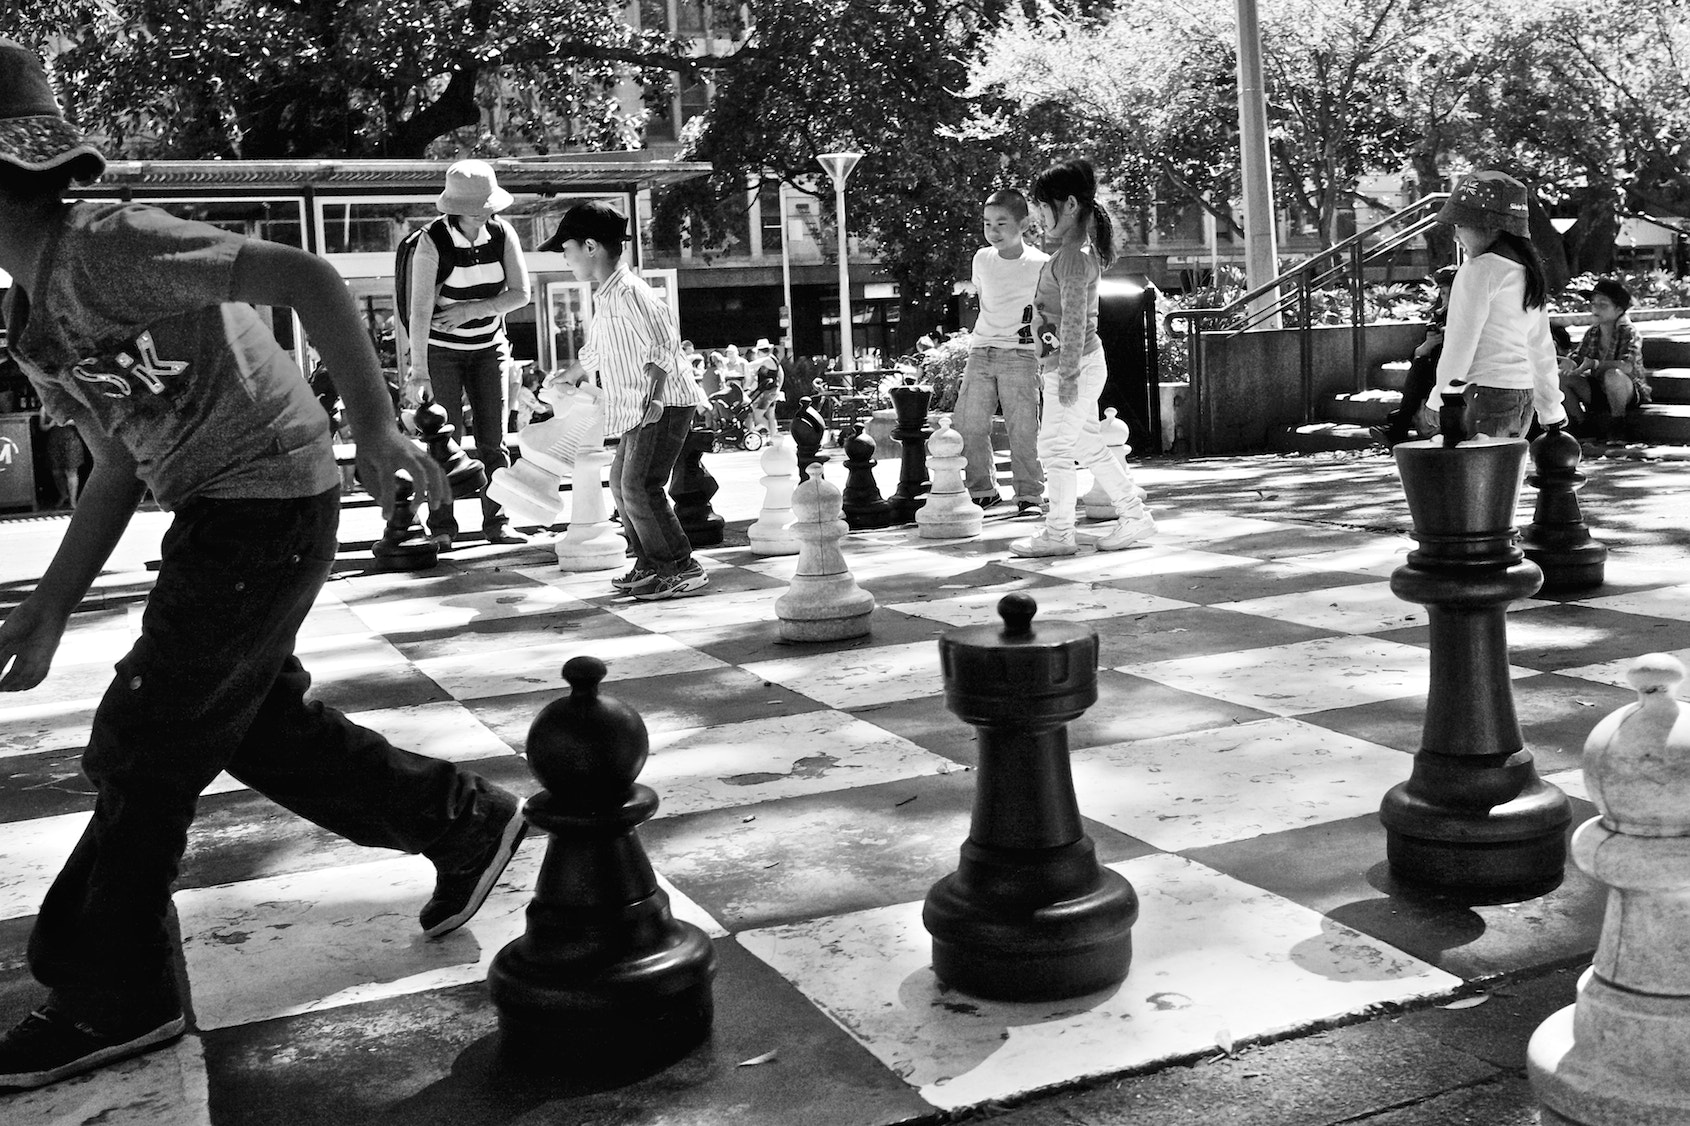 Photograph Chess Time by Scott Kim on 500px